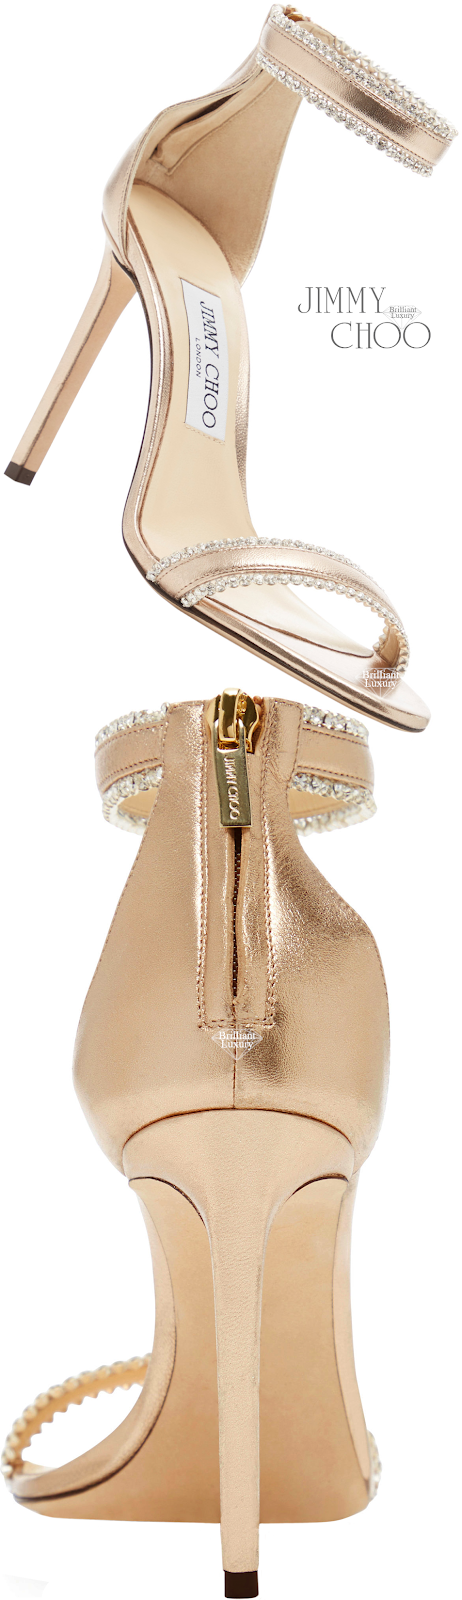 Jimmy Choo Dochas Crystal-Embellished Neutral Leather Sandals #brilliantluxury